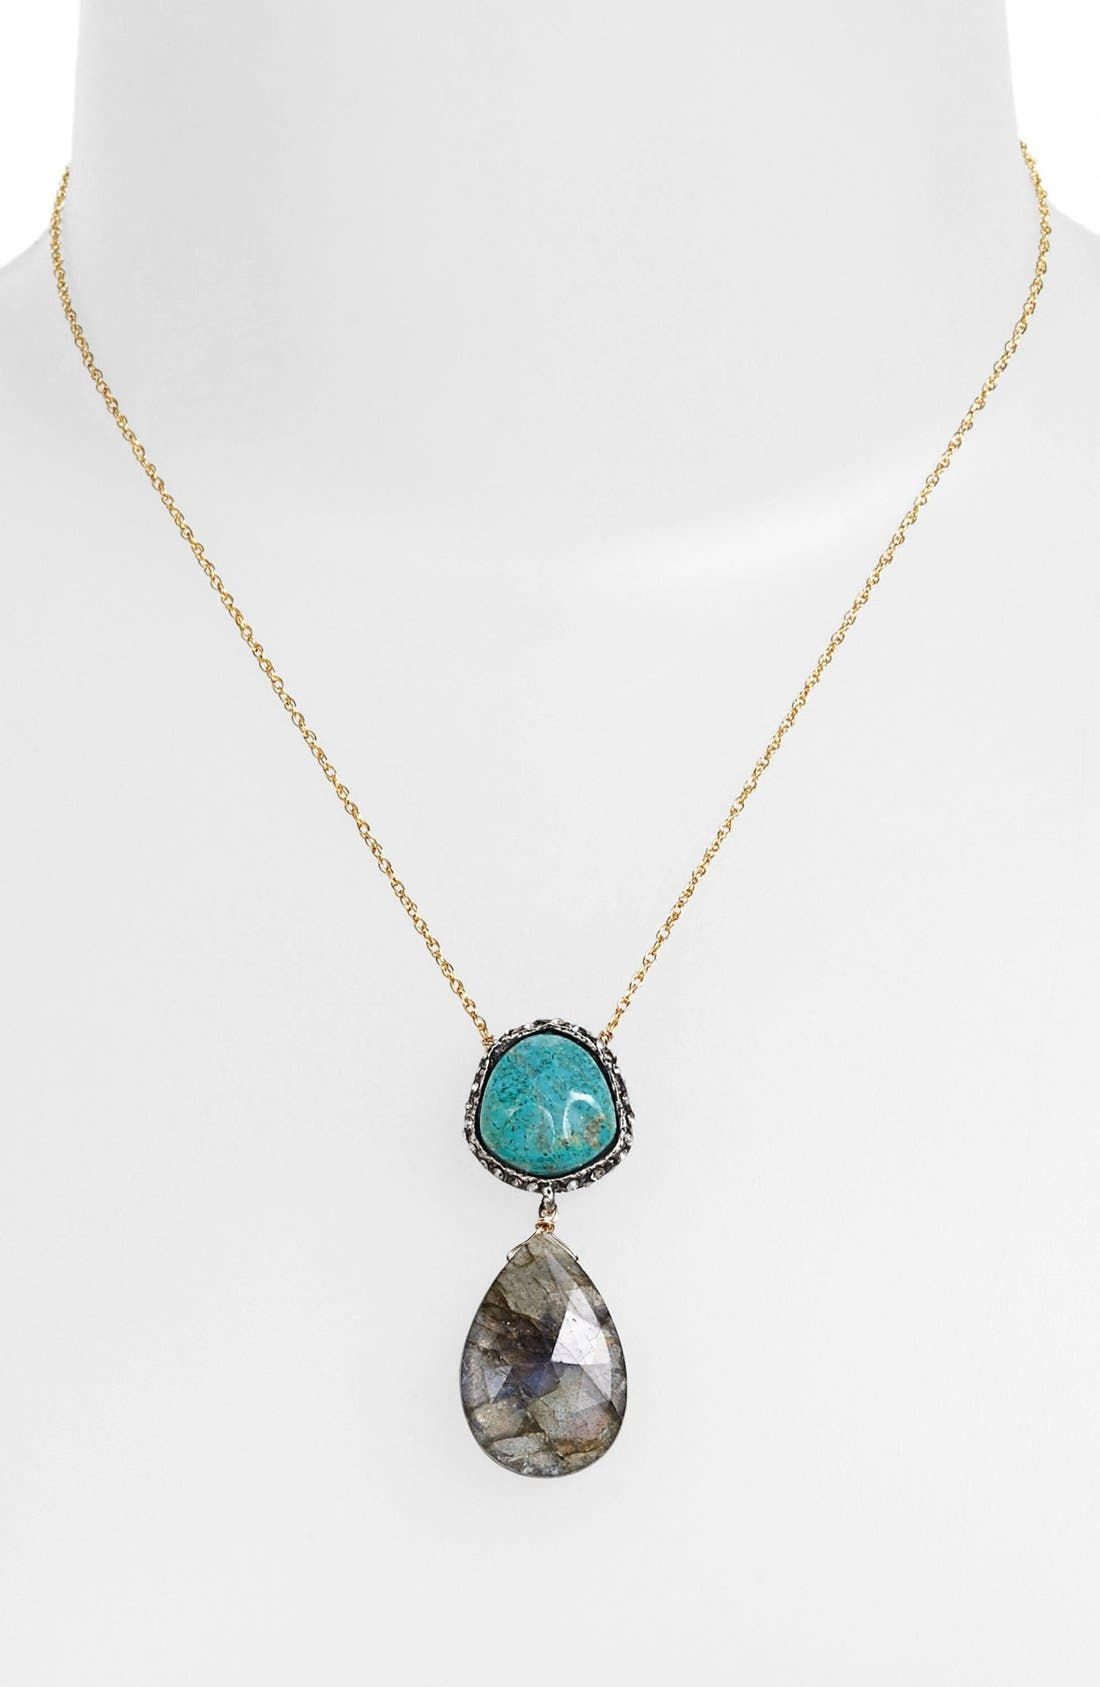 Alternate Image 1 Selected - Alexis Bittar 'Elements - Cordova' Pendant Necklace